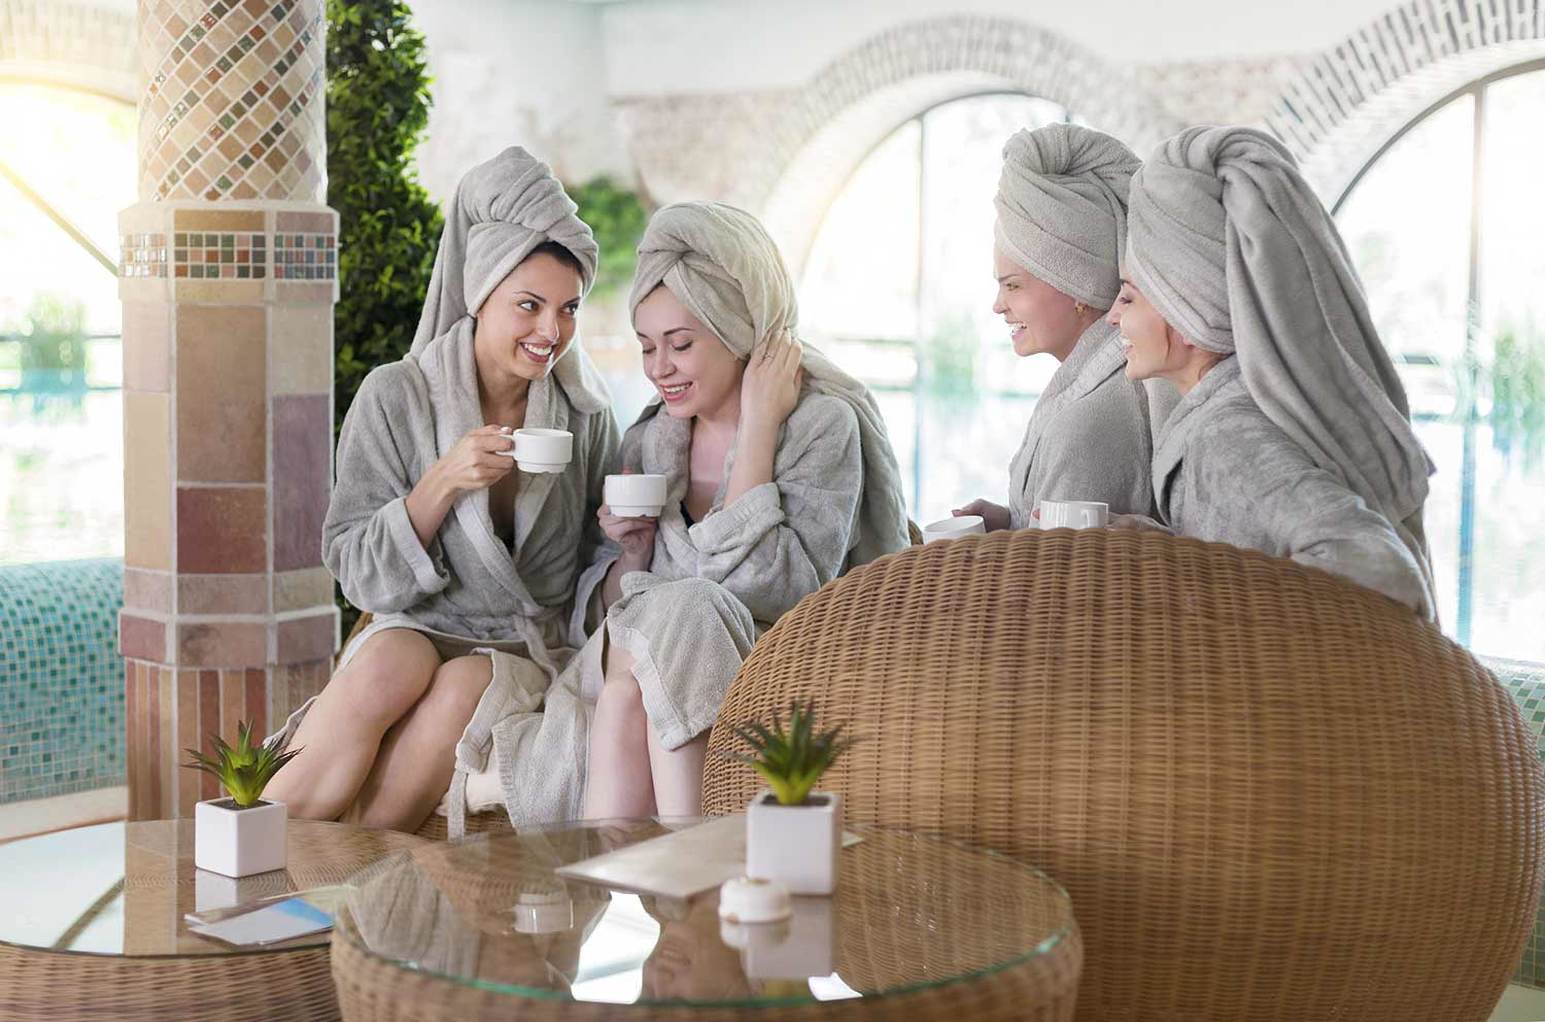 Spa_holidays_in_Europe_hen_party_ideas.jpg